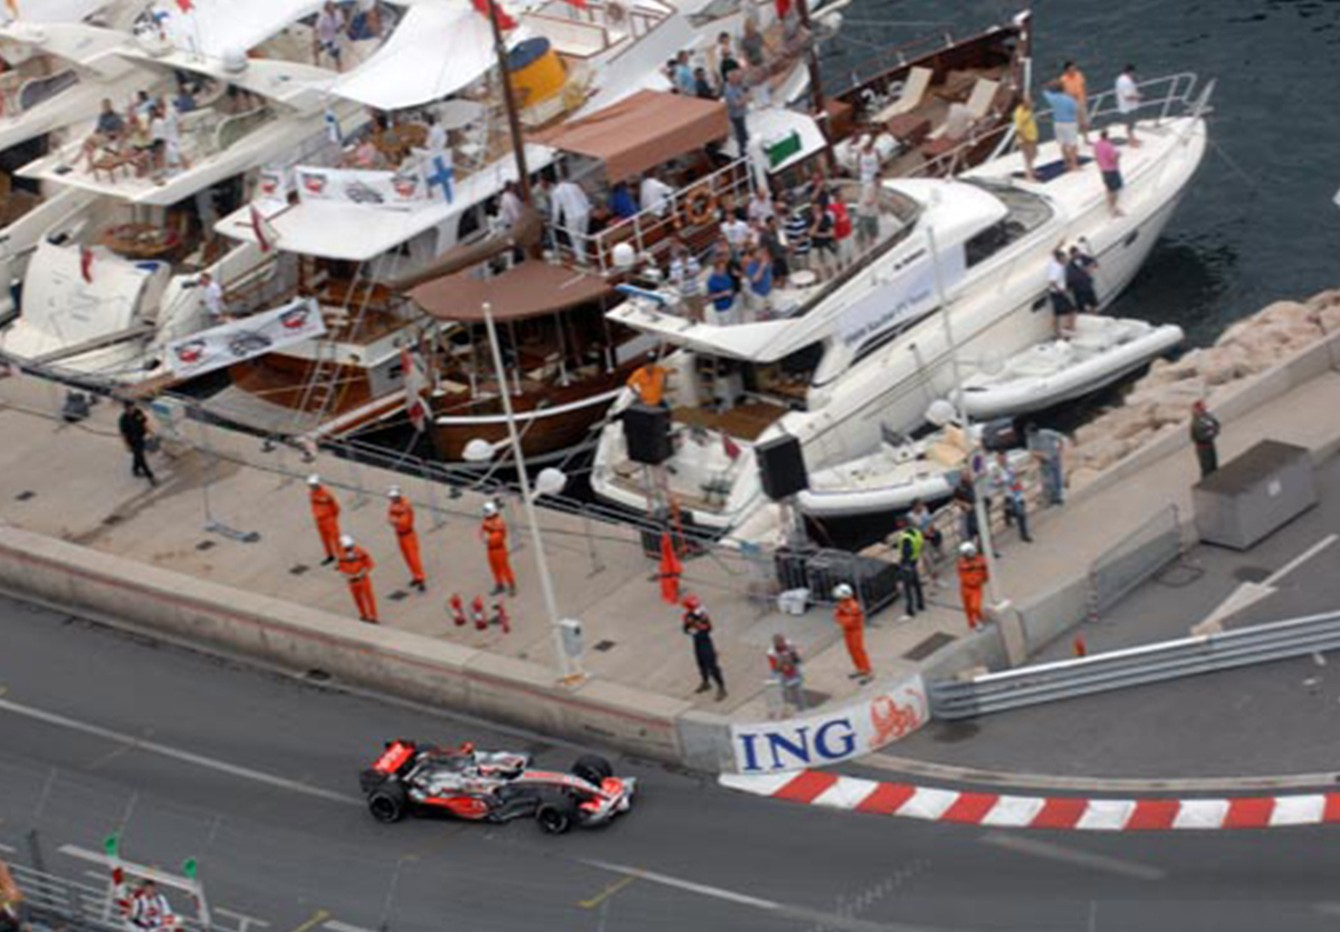 Monaco Grand Prix accommodation